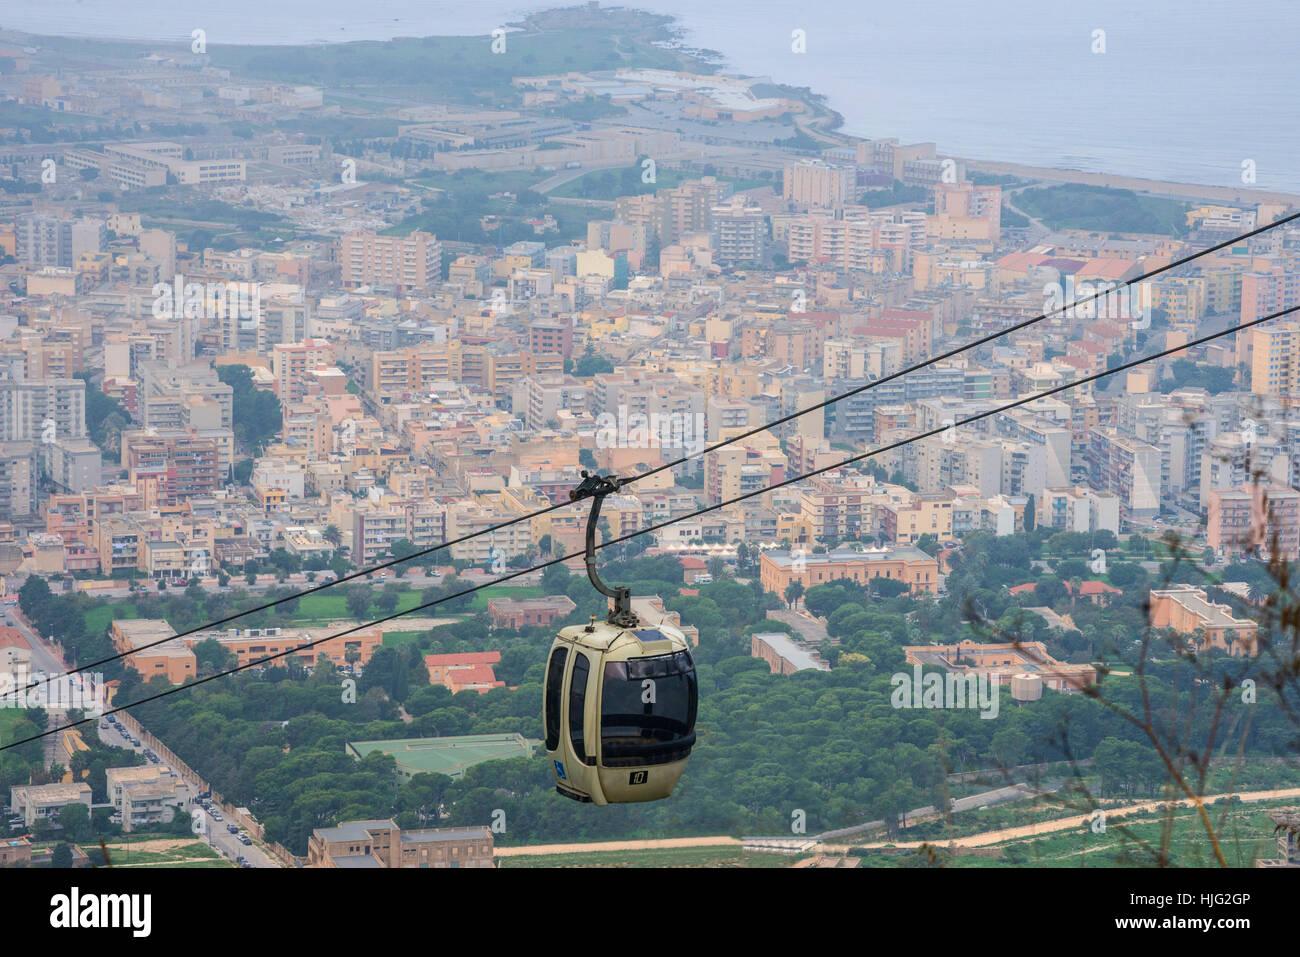 Trapani-Erice cableway, Trapani, Sicily, Italy - Stock Image